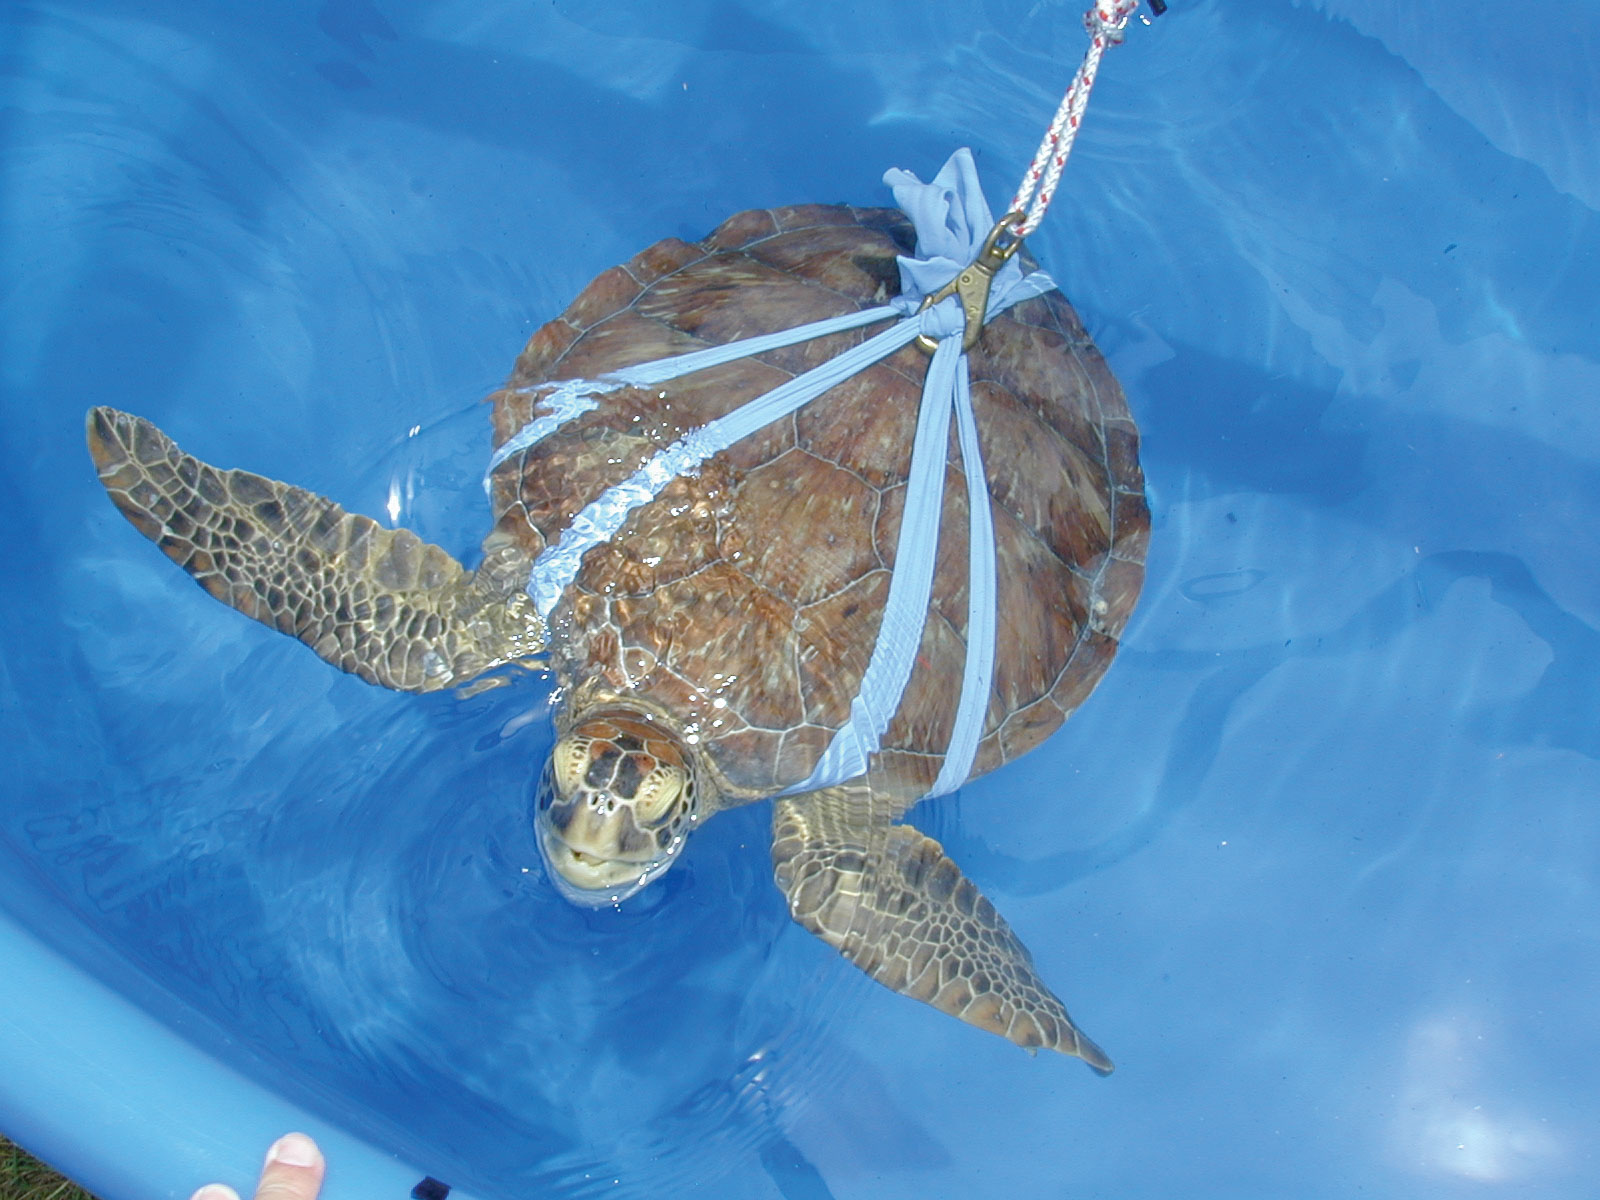 A juvenile green turtle in a cloth harness is tethered to an electronic tracking system inside a magnetic coil. This methodology is used for magnetic navigation studies. © KENNETH J. LOHMANN